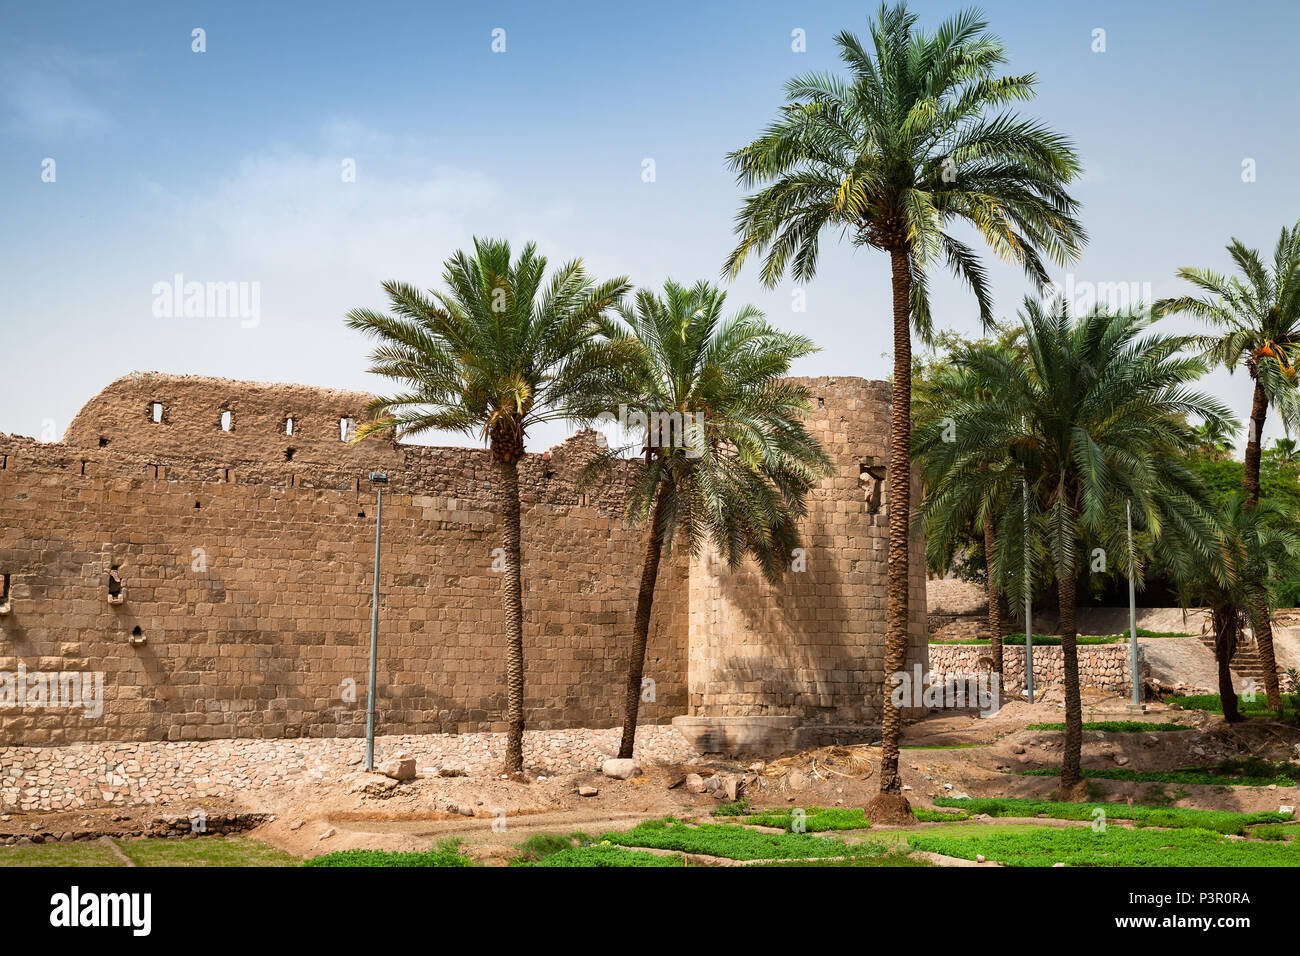 Aqaba Fortress, Mamluk Castle or Aqaba Fort located in Aqaba city, Jordan - Stock Image